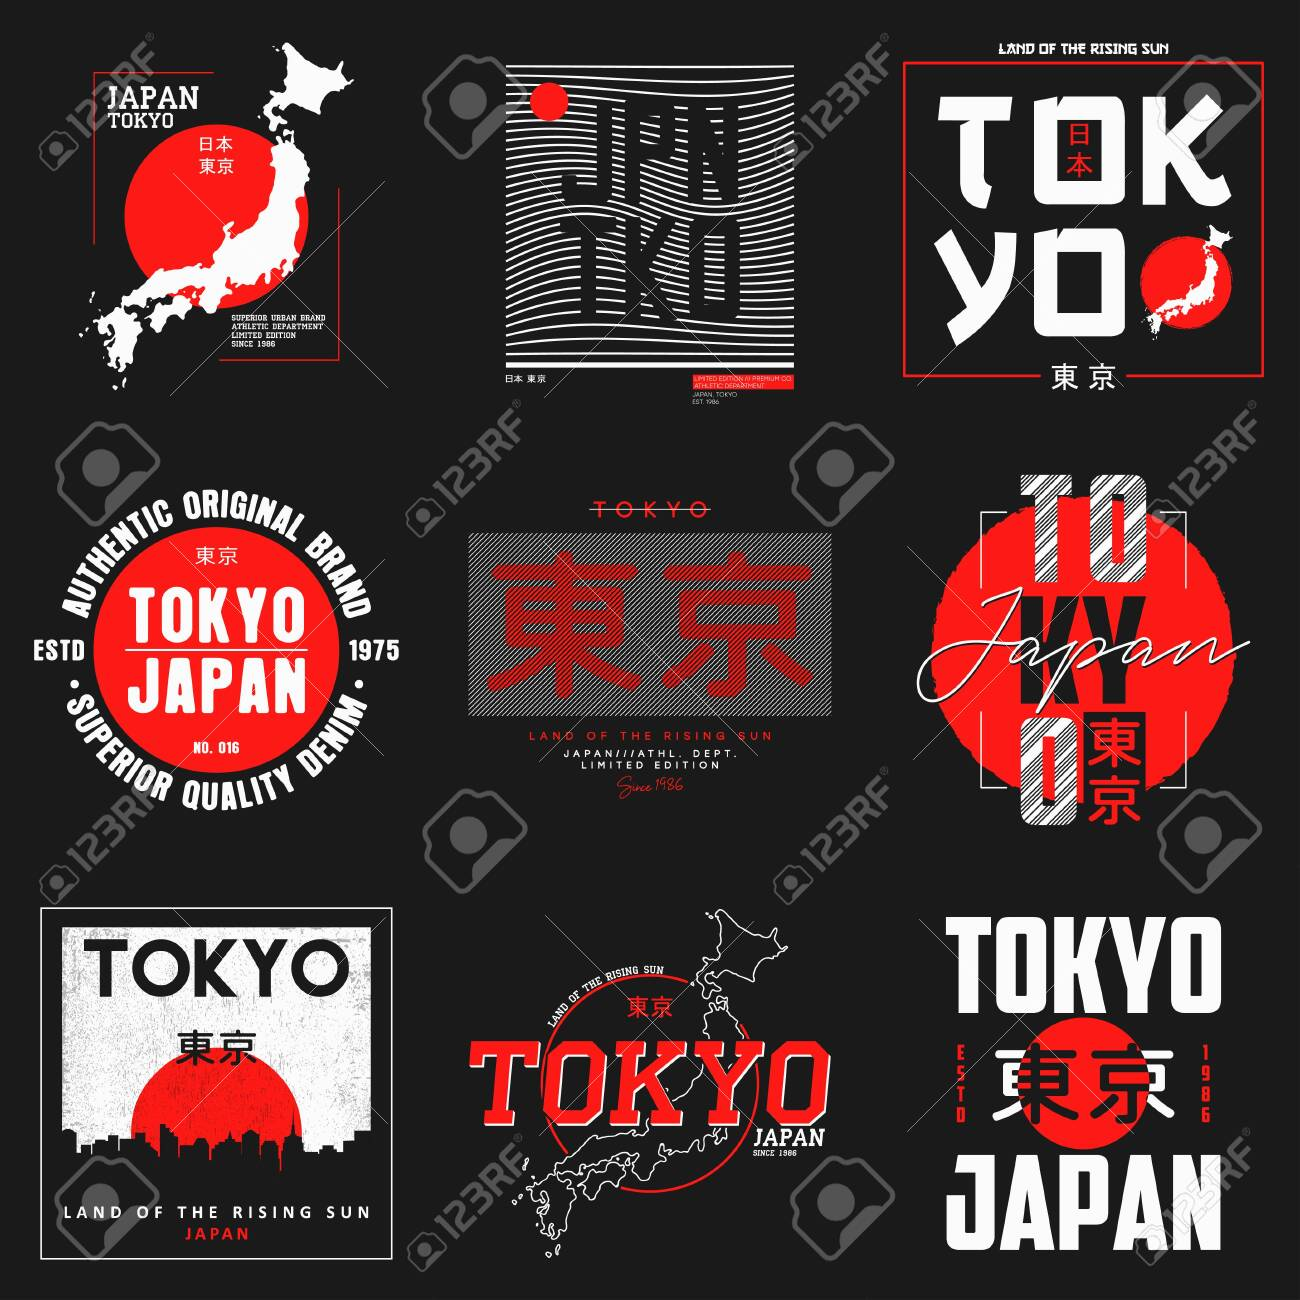 Set of vintage Tokyo and Japan t-shirt designs. Tee shirt print with inscription in Japanese. Collection of Tokyo apparel. Typography graphics. Vector illustration. - 146707684